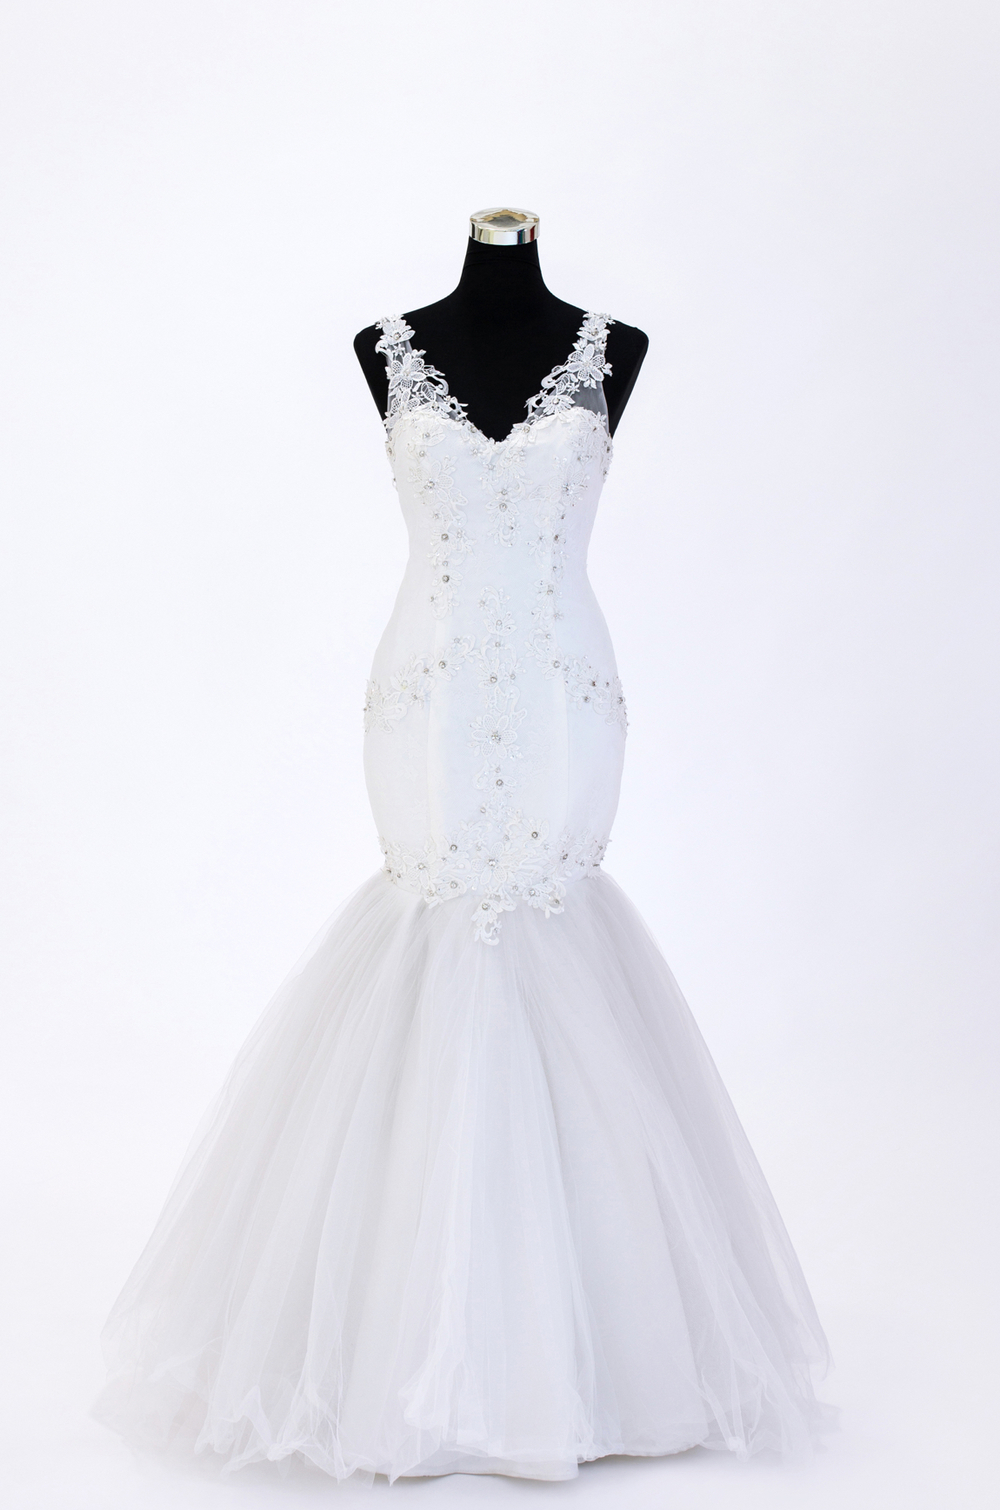 Bv gown singapore wedding gown rental singapore for Rent wedding dress dc